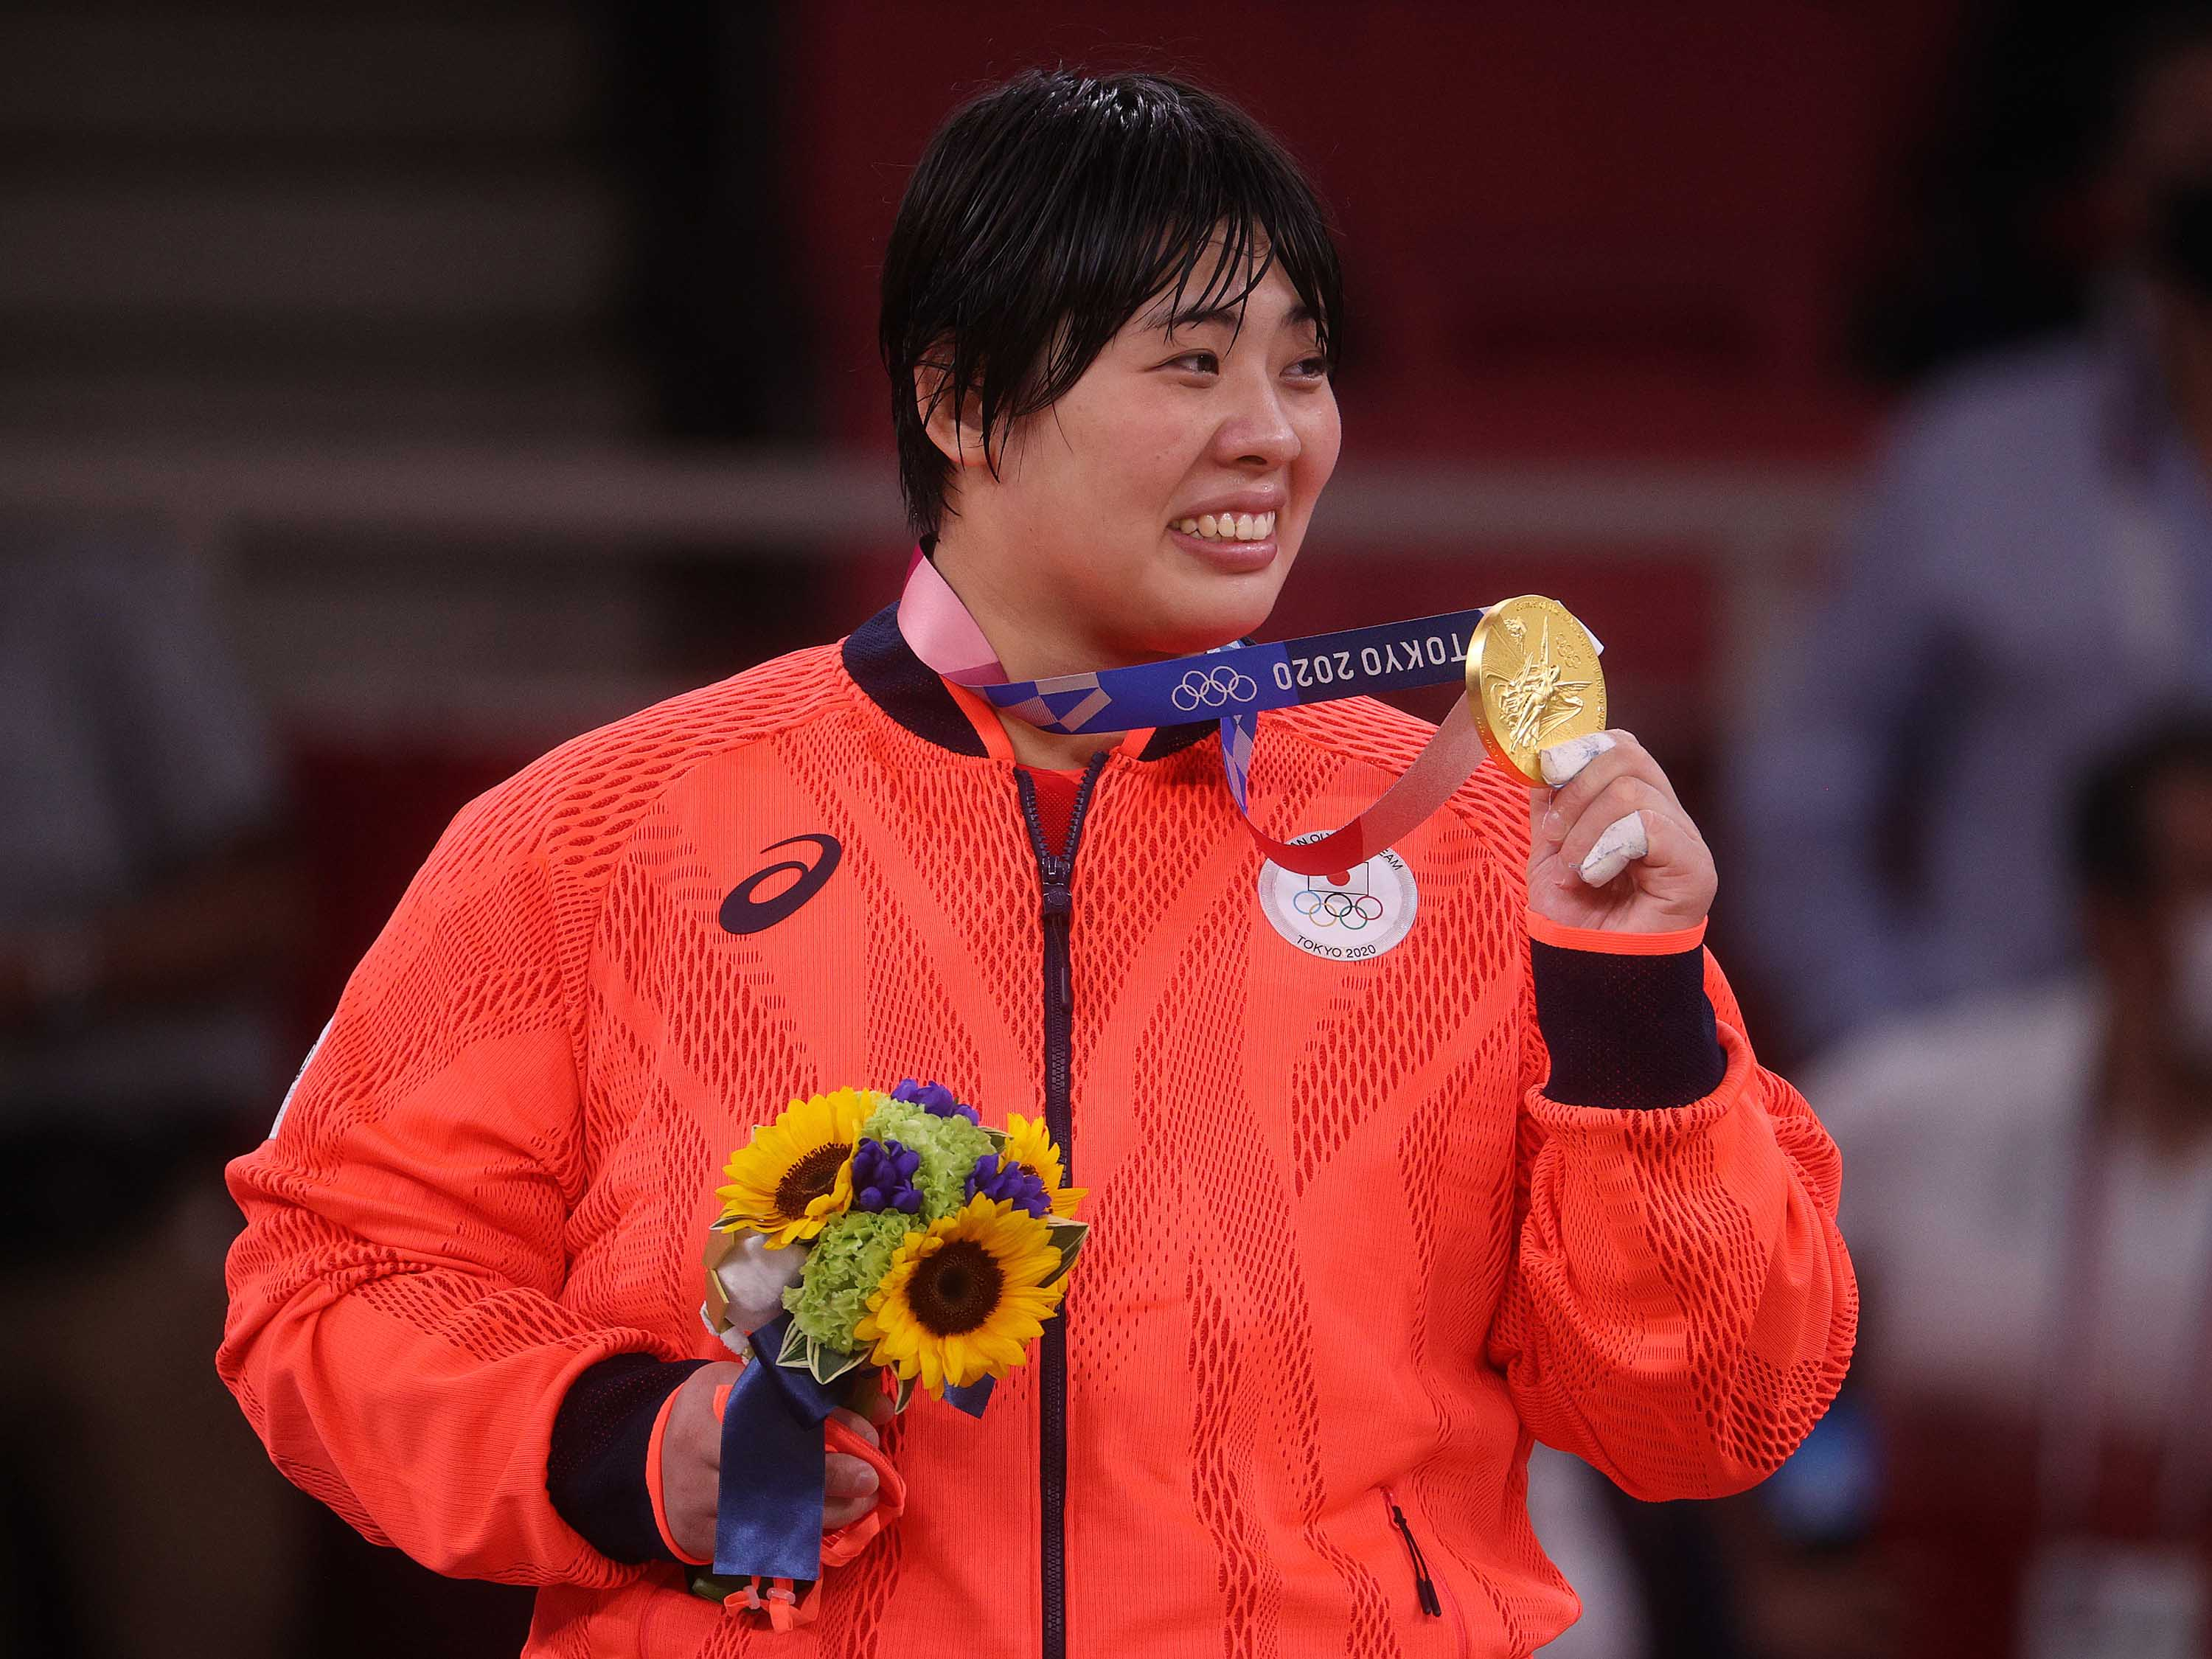 Sone Akira of Team Japan poses with the gold medal for the women's judo 78kg event on July 30, in Tokyo.